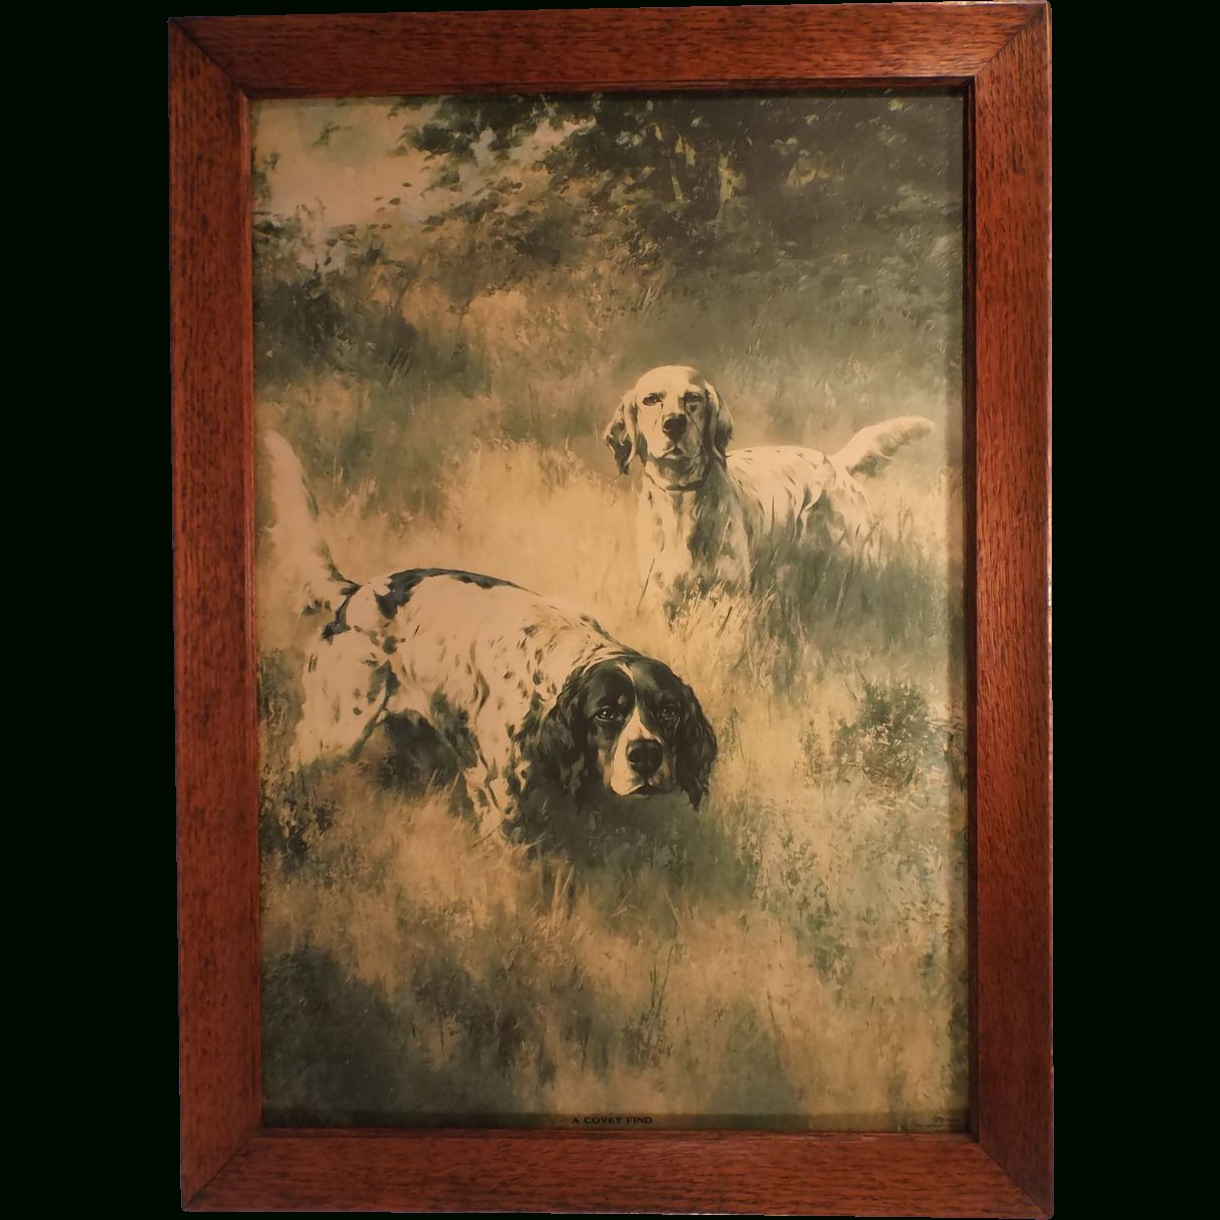 A Covey Find, Vintage Fine Art Framed Hunting Dog Print, Percival In Most Current Framed Fine Art Prints (View 6 of 15)